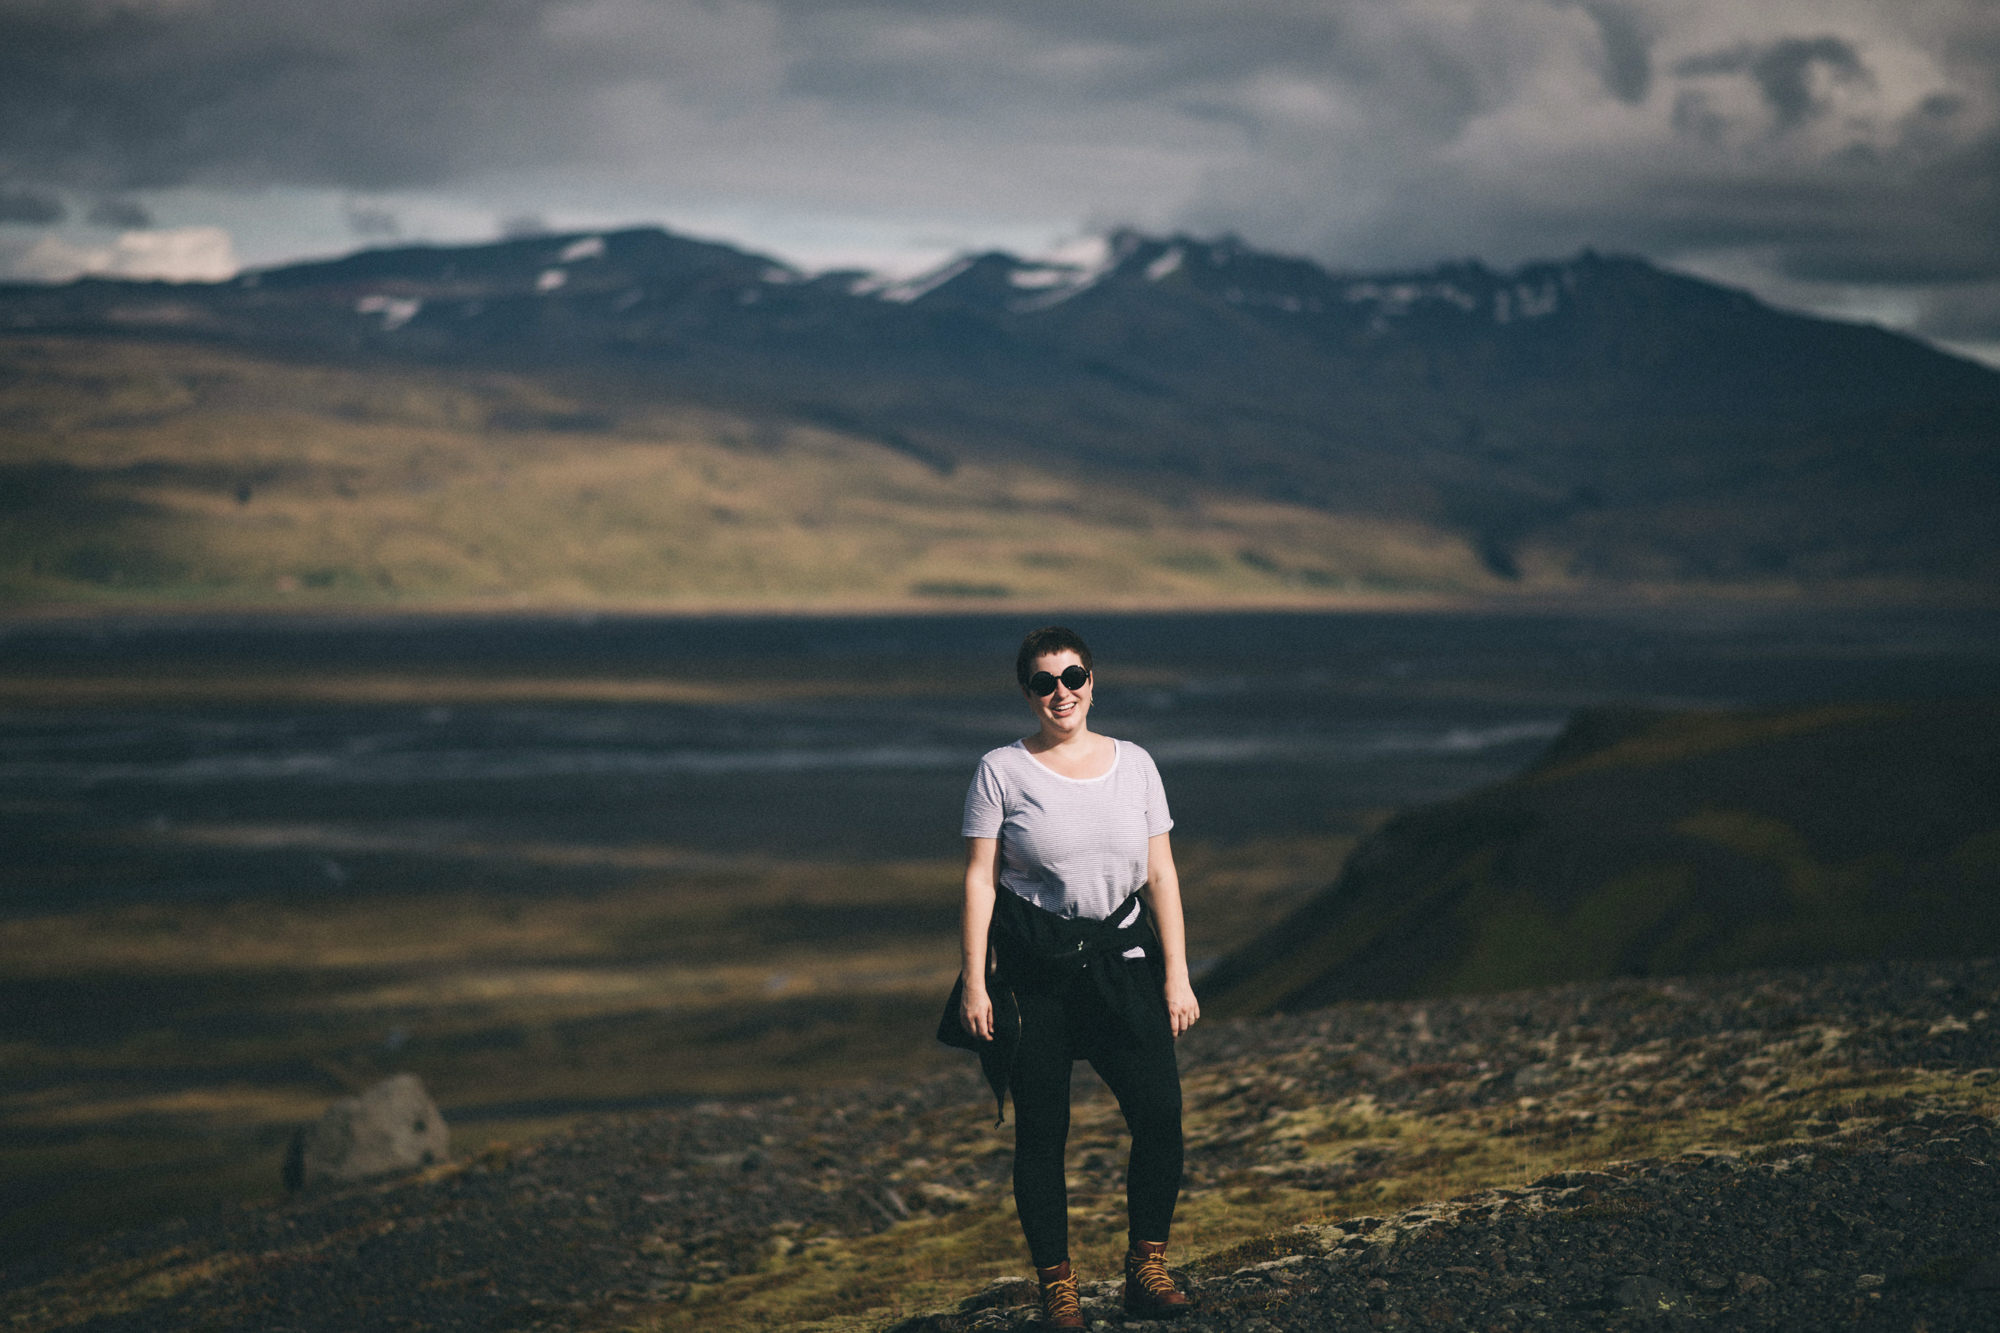 Sarah-Katherine-Davis-Photography-Iceland-Adventure-Elopement-Photographer-Louisville-Kentucky-Wedding-Photographer-Travel-Vik-Beach-Engagement-Session-Cozy-Iceland-South-Coast-331edit.jpg